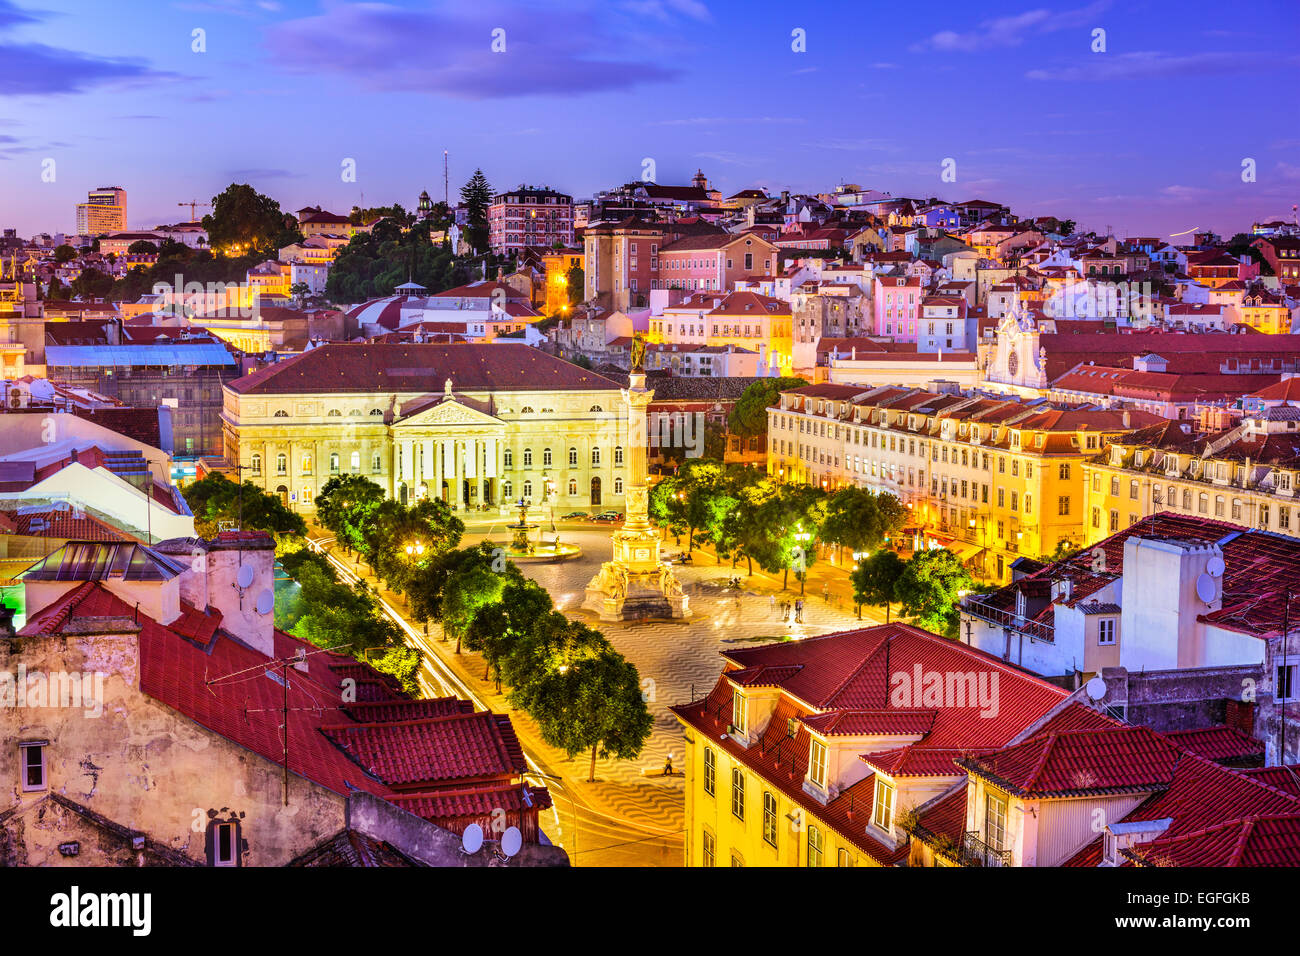 Lisbon, Portugal Pombaline district skyline over Rossio Square. - Stock Image